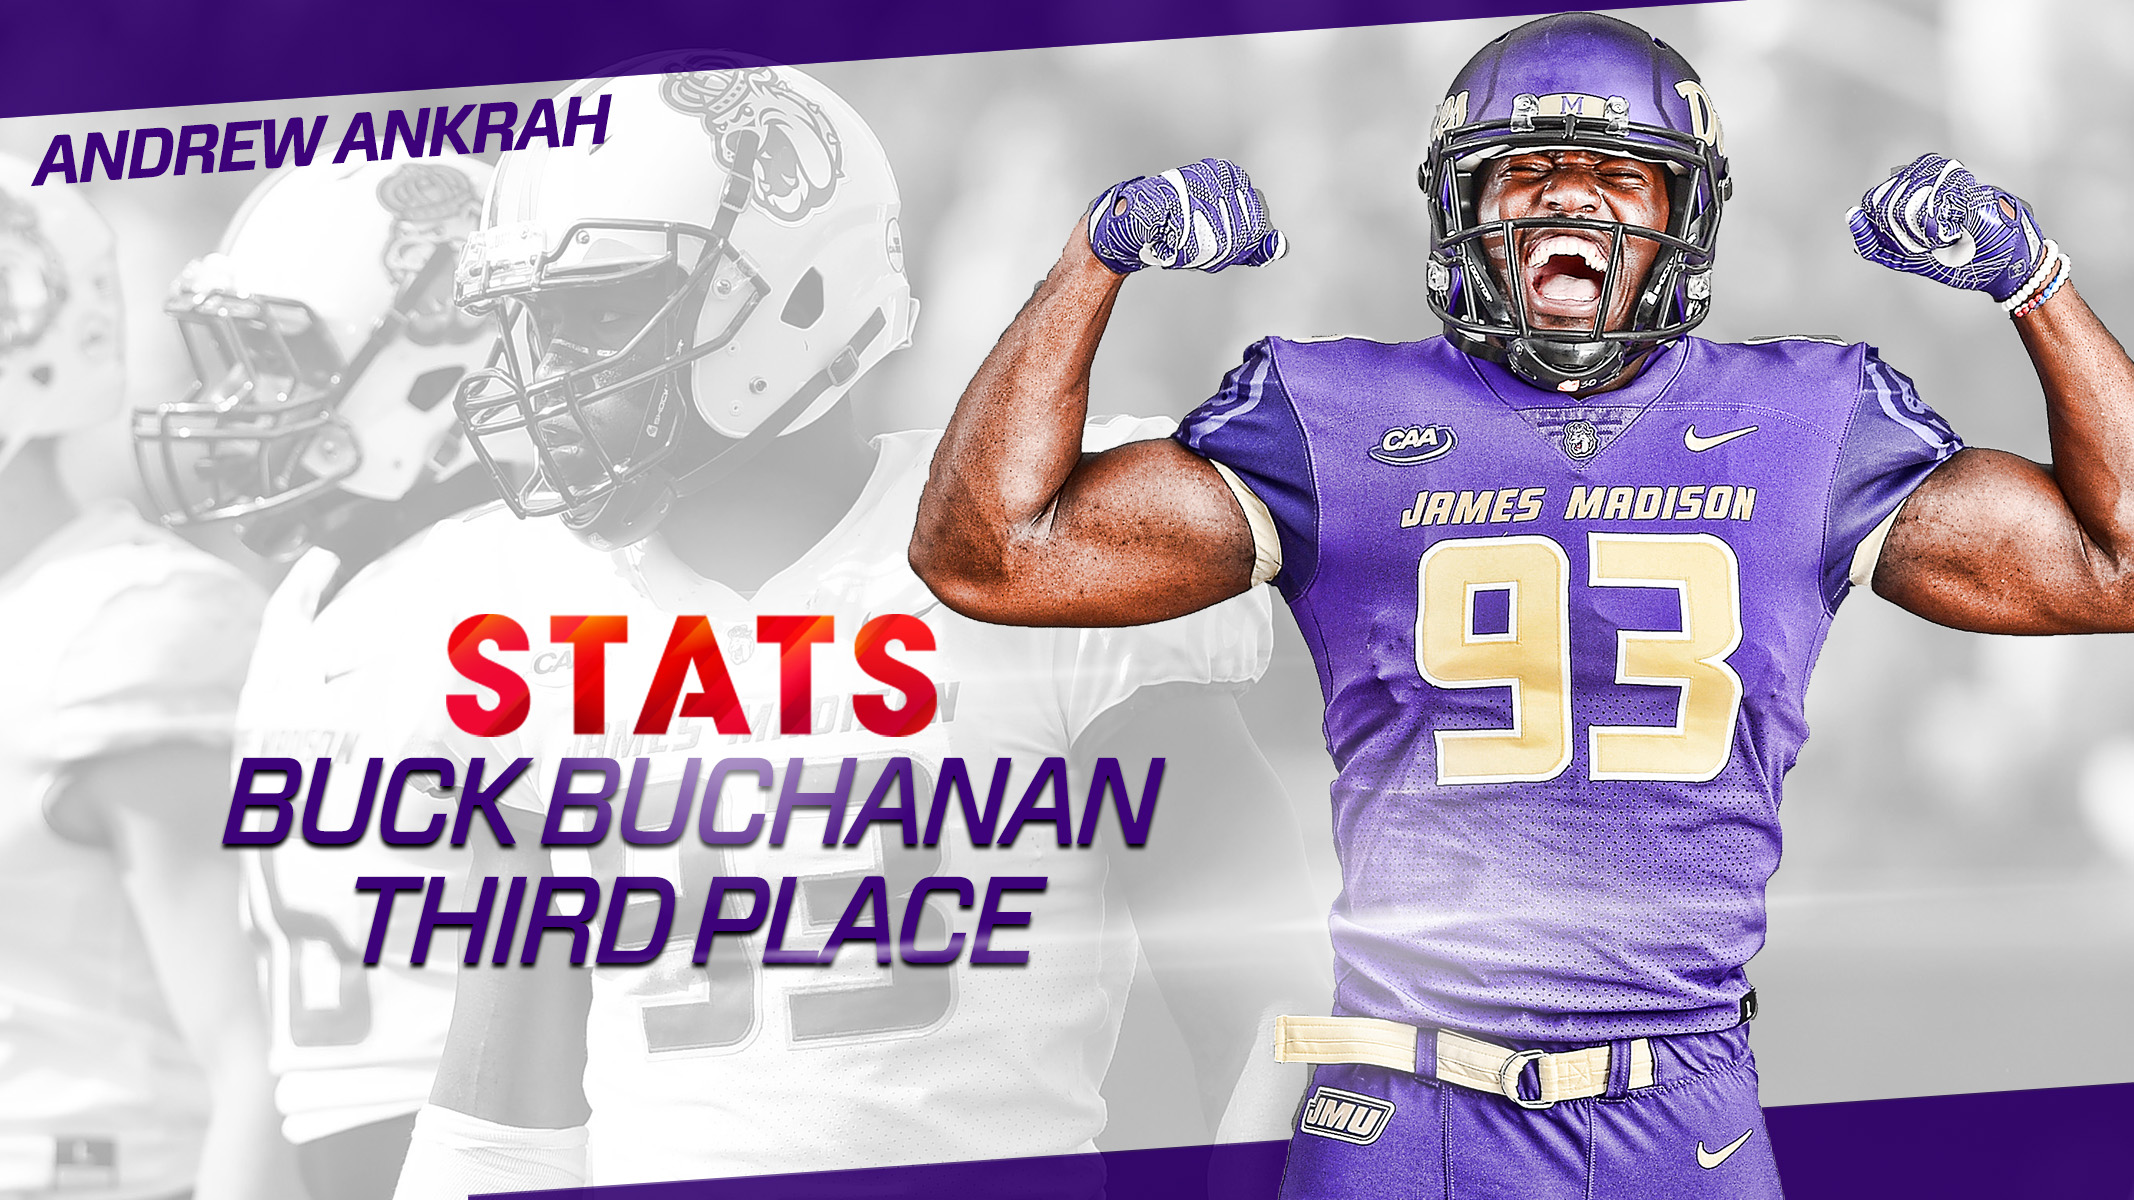 buy popular dbfb4 0f3ab Andrew Ankrah Voted Third for Buck Buchanan Award ...